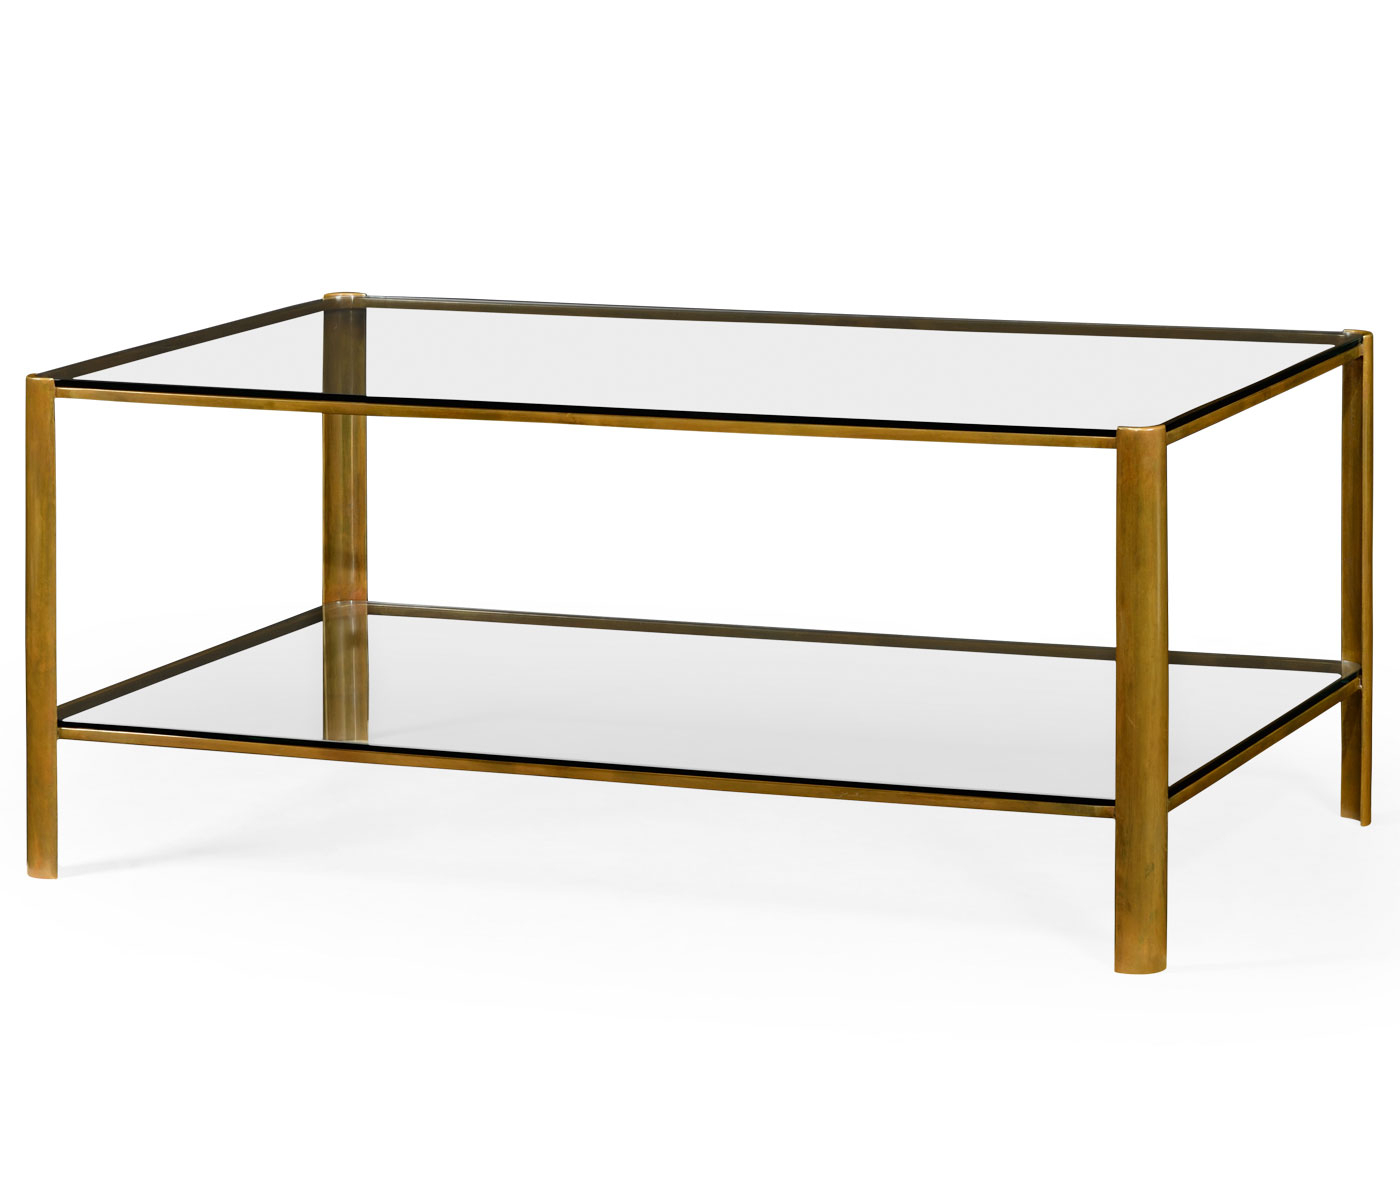 Rectangular Brass Finish And Glass Coffee Tables Within Current Brass & Glass Coffee Table (Gallery 2 of 20)